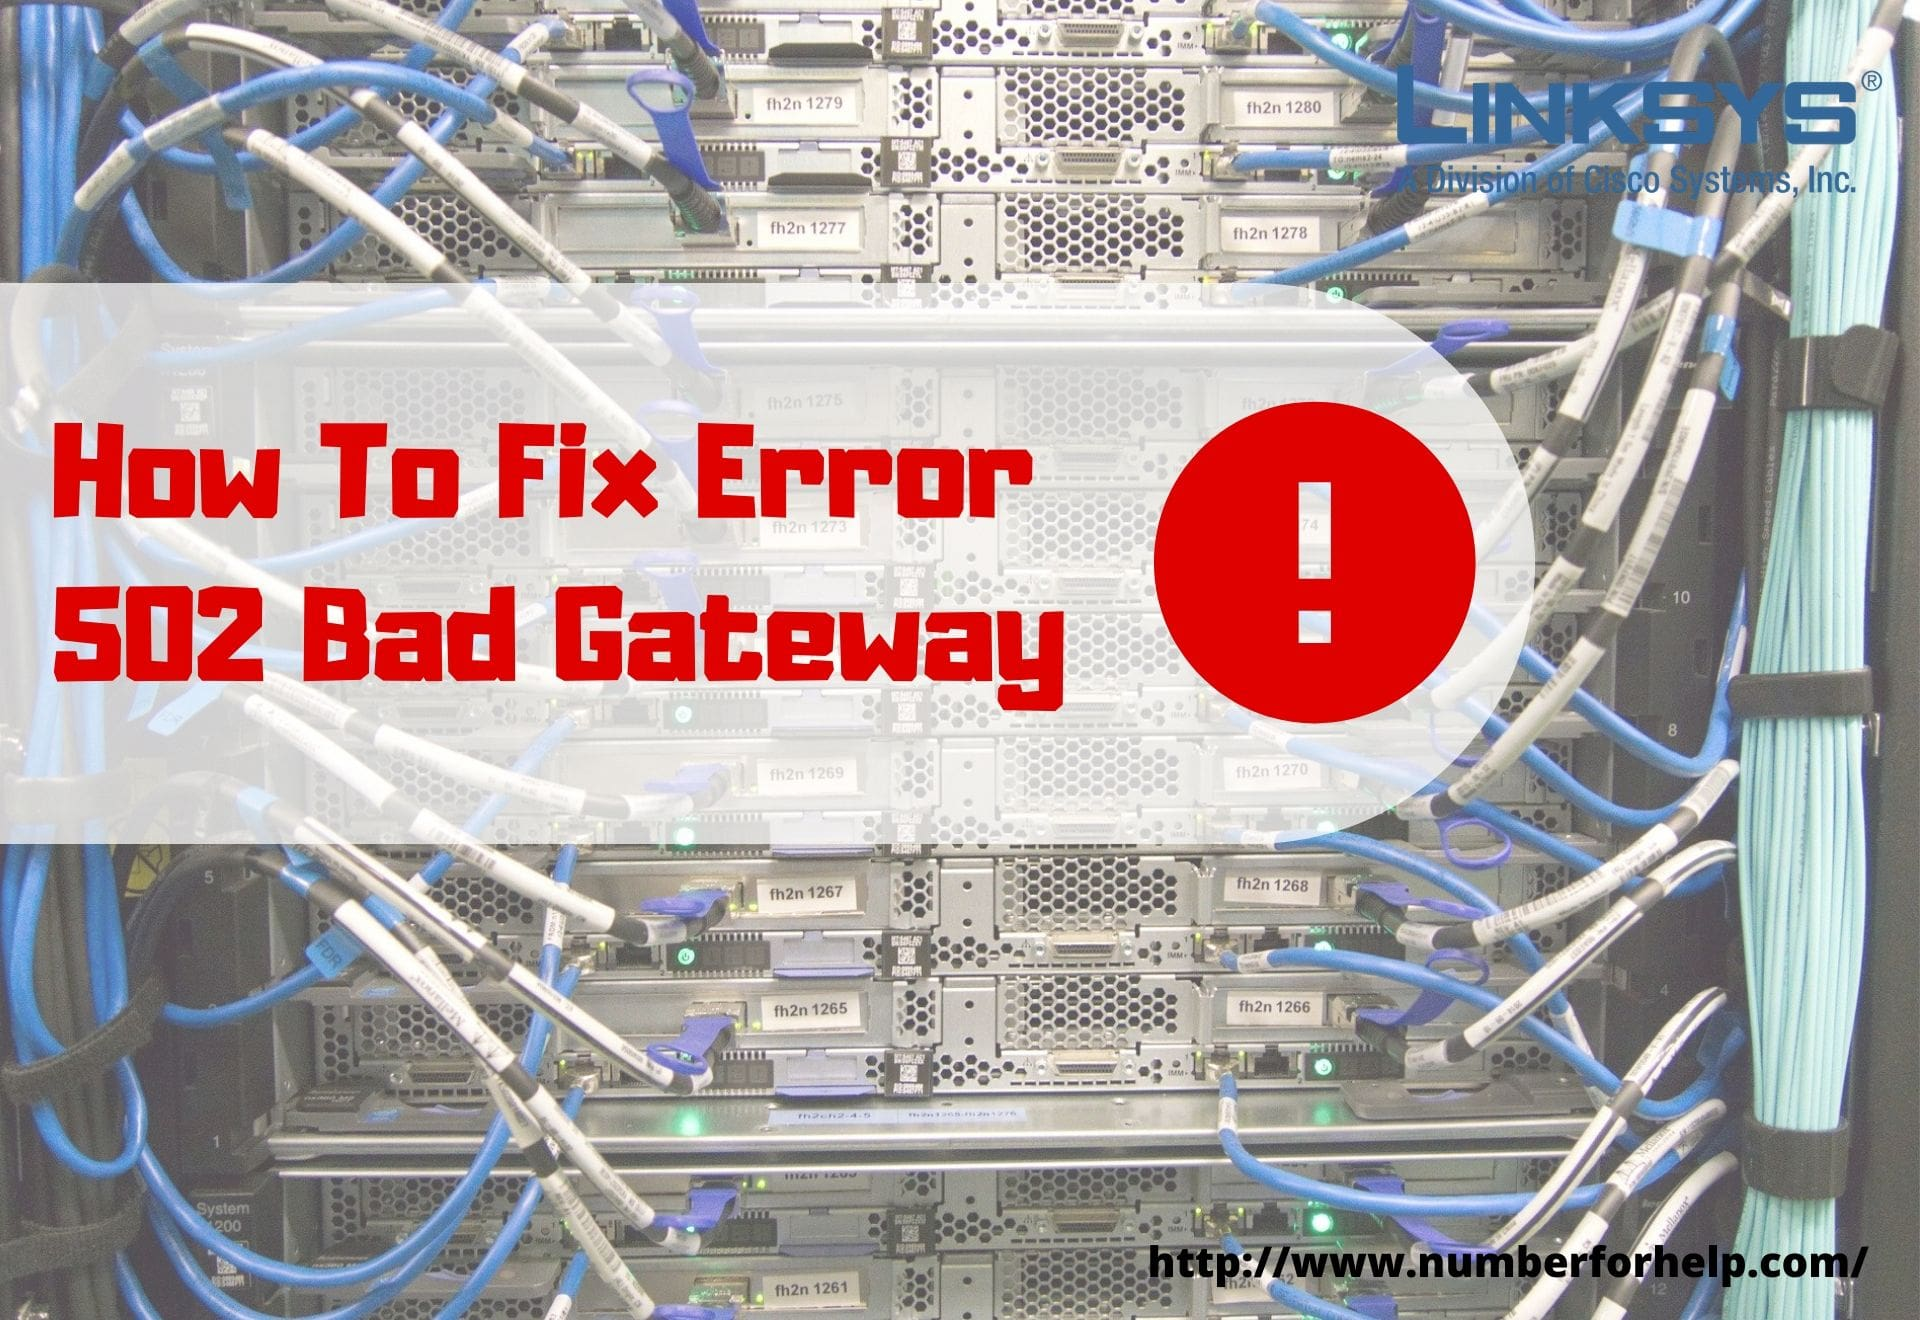 2019-11-13-11-35-54How To Fix Error 502 Bad Gateway-min